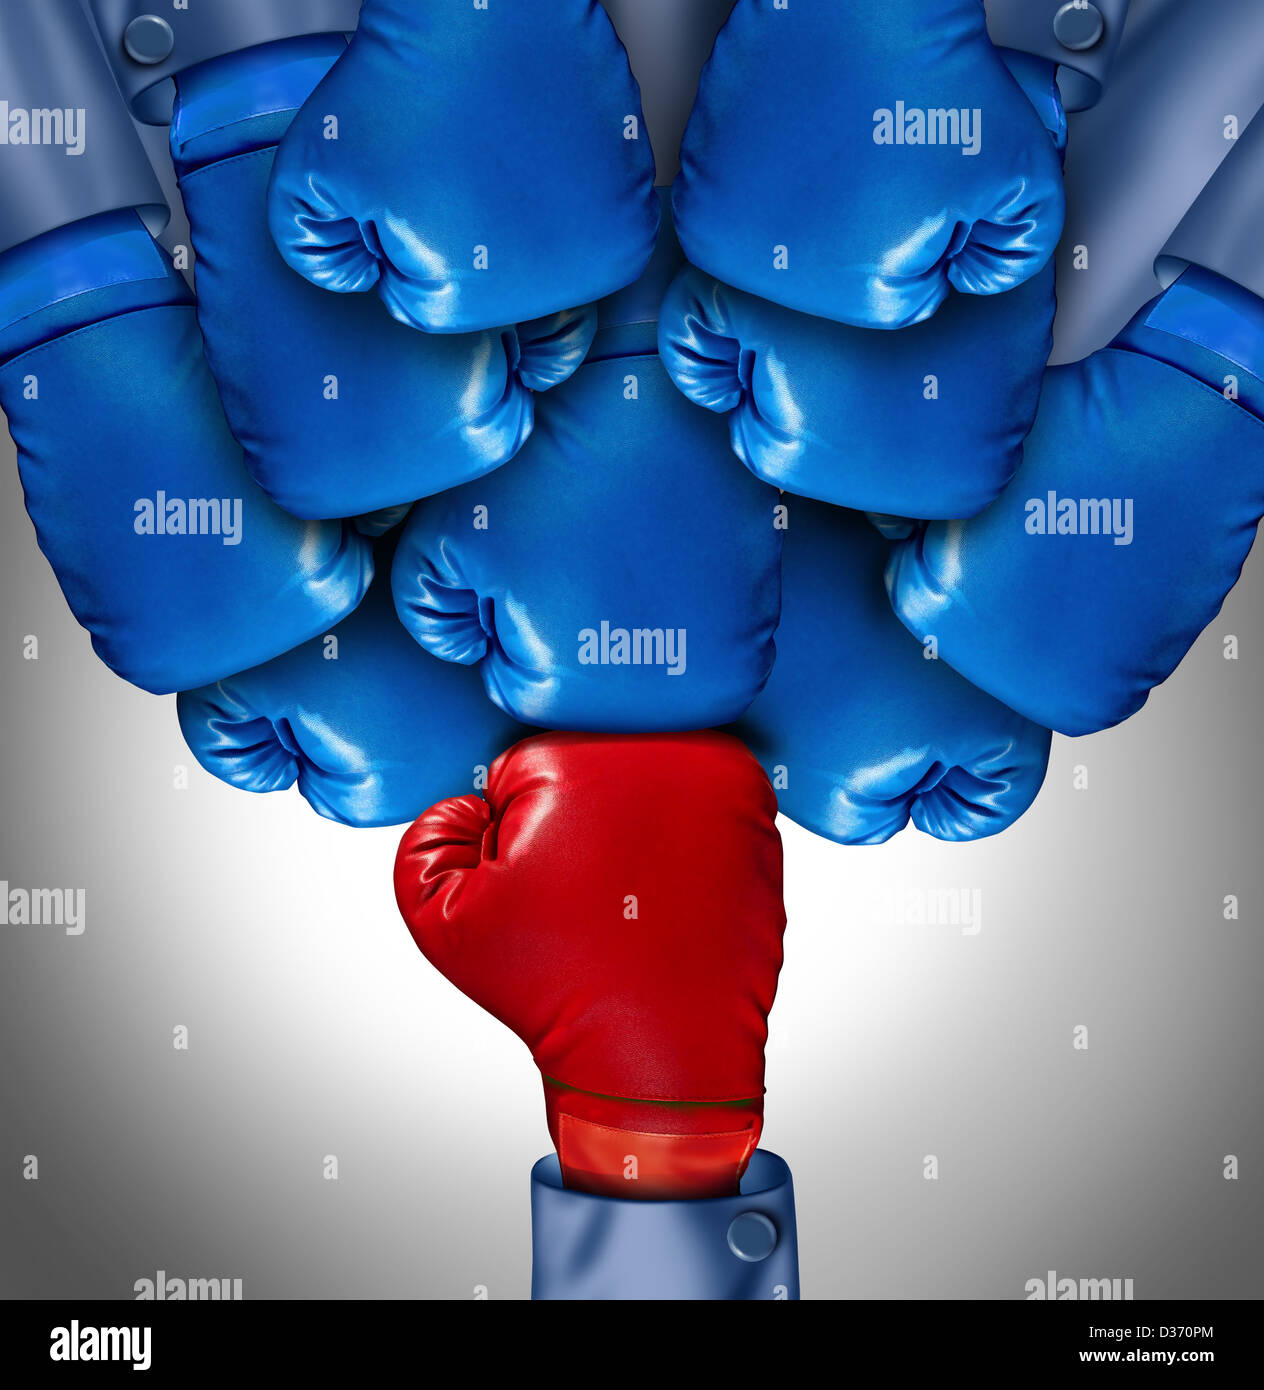 Overcoming adversity and conquering challenges as a group of blue boxing gloves ganging up on a single red glove Stock Photo